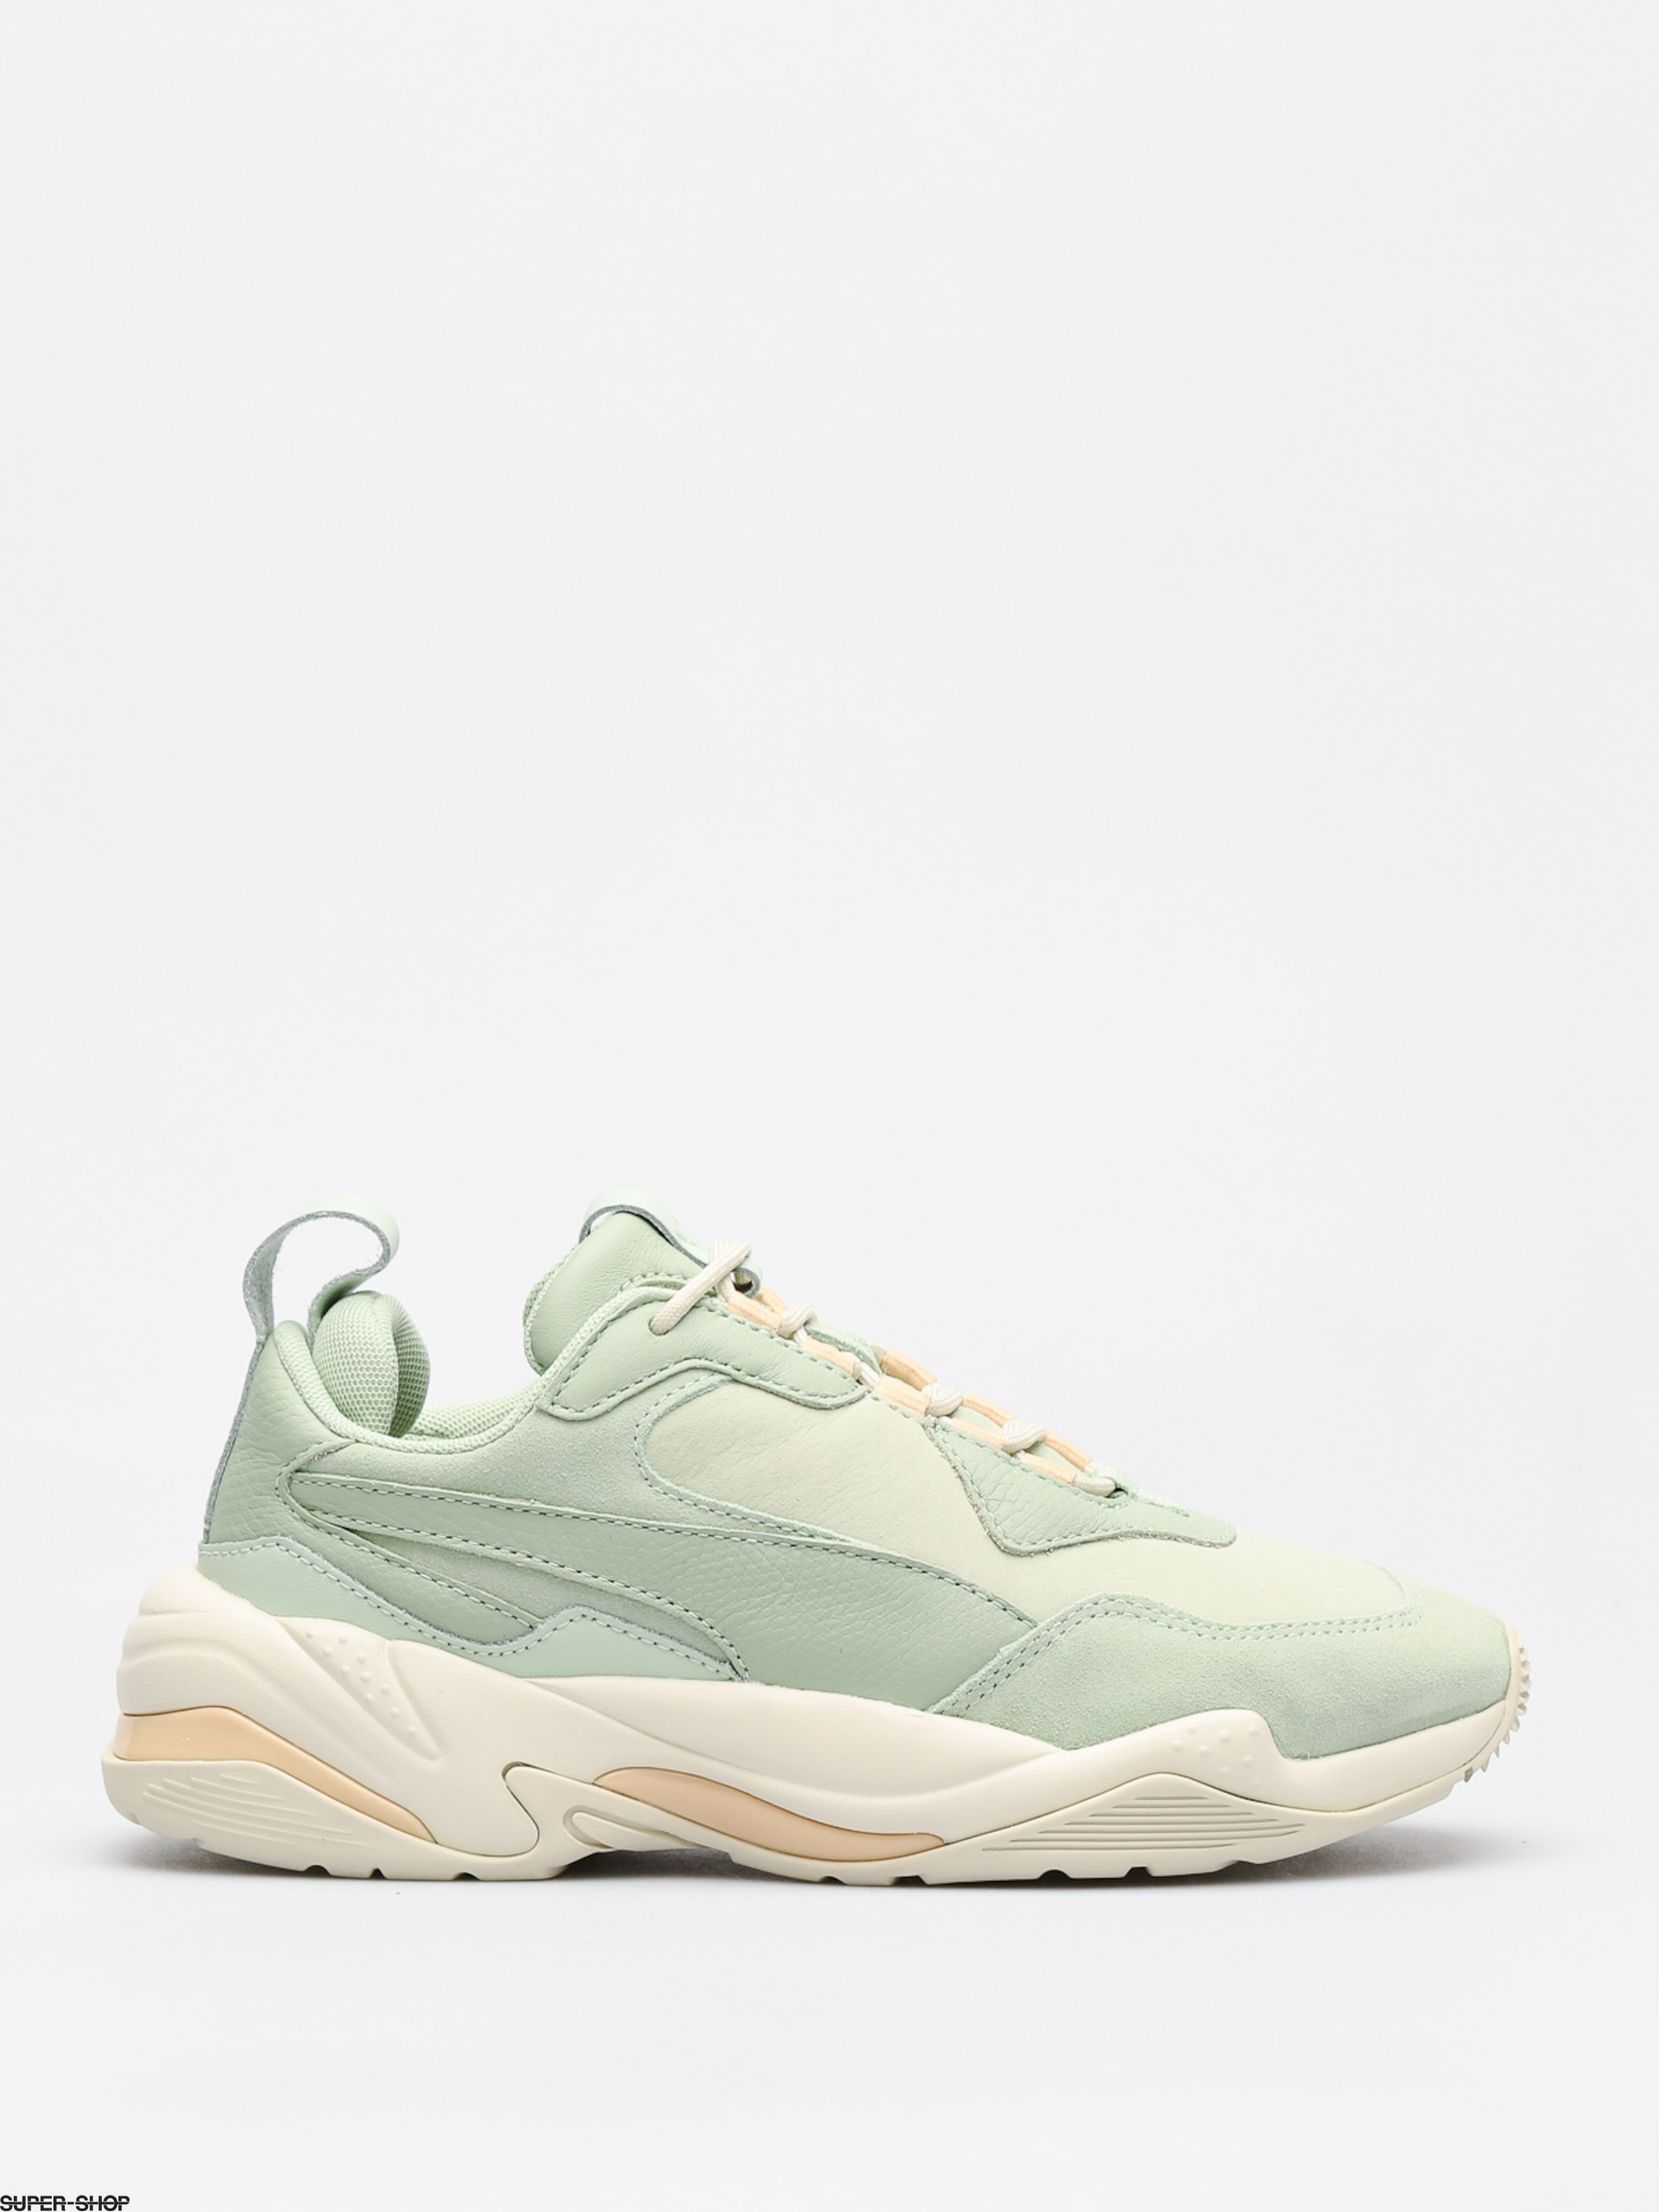 ecd7804ae9a Puma Shoes Thunder Desert Wmn (smoke green silver g)